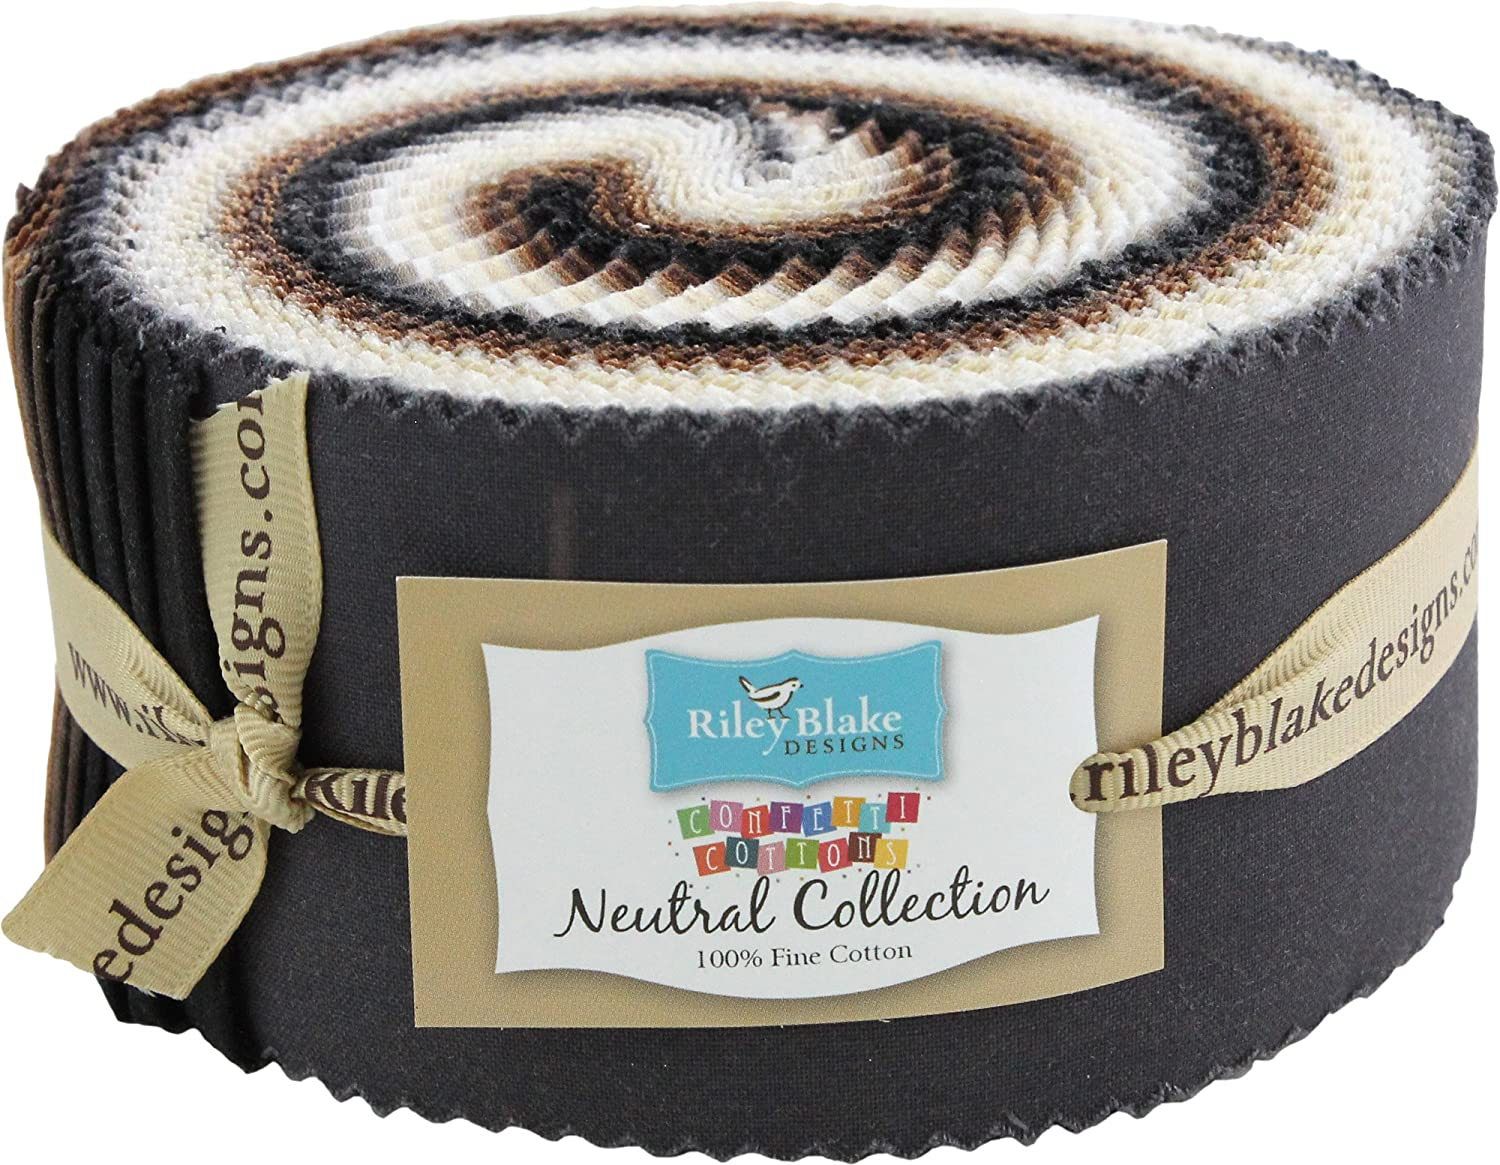 Confetti Cottons Neutral Rolie Polie 40 2.5-inch Strips Jelly Roll Riley Blake Designs RP-NE120-40